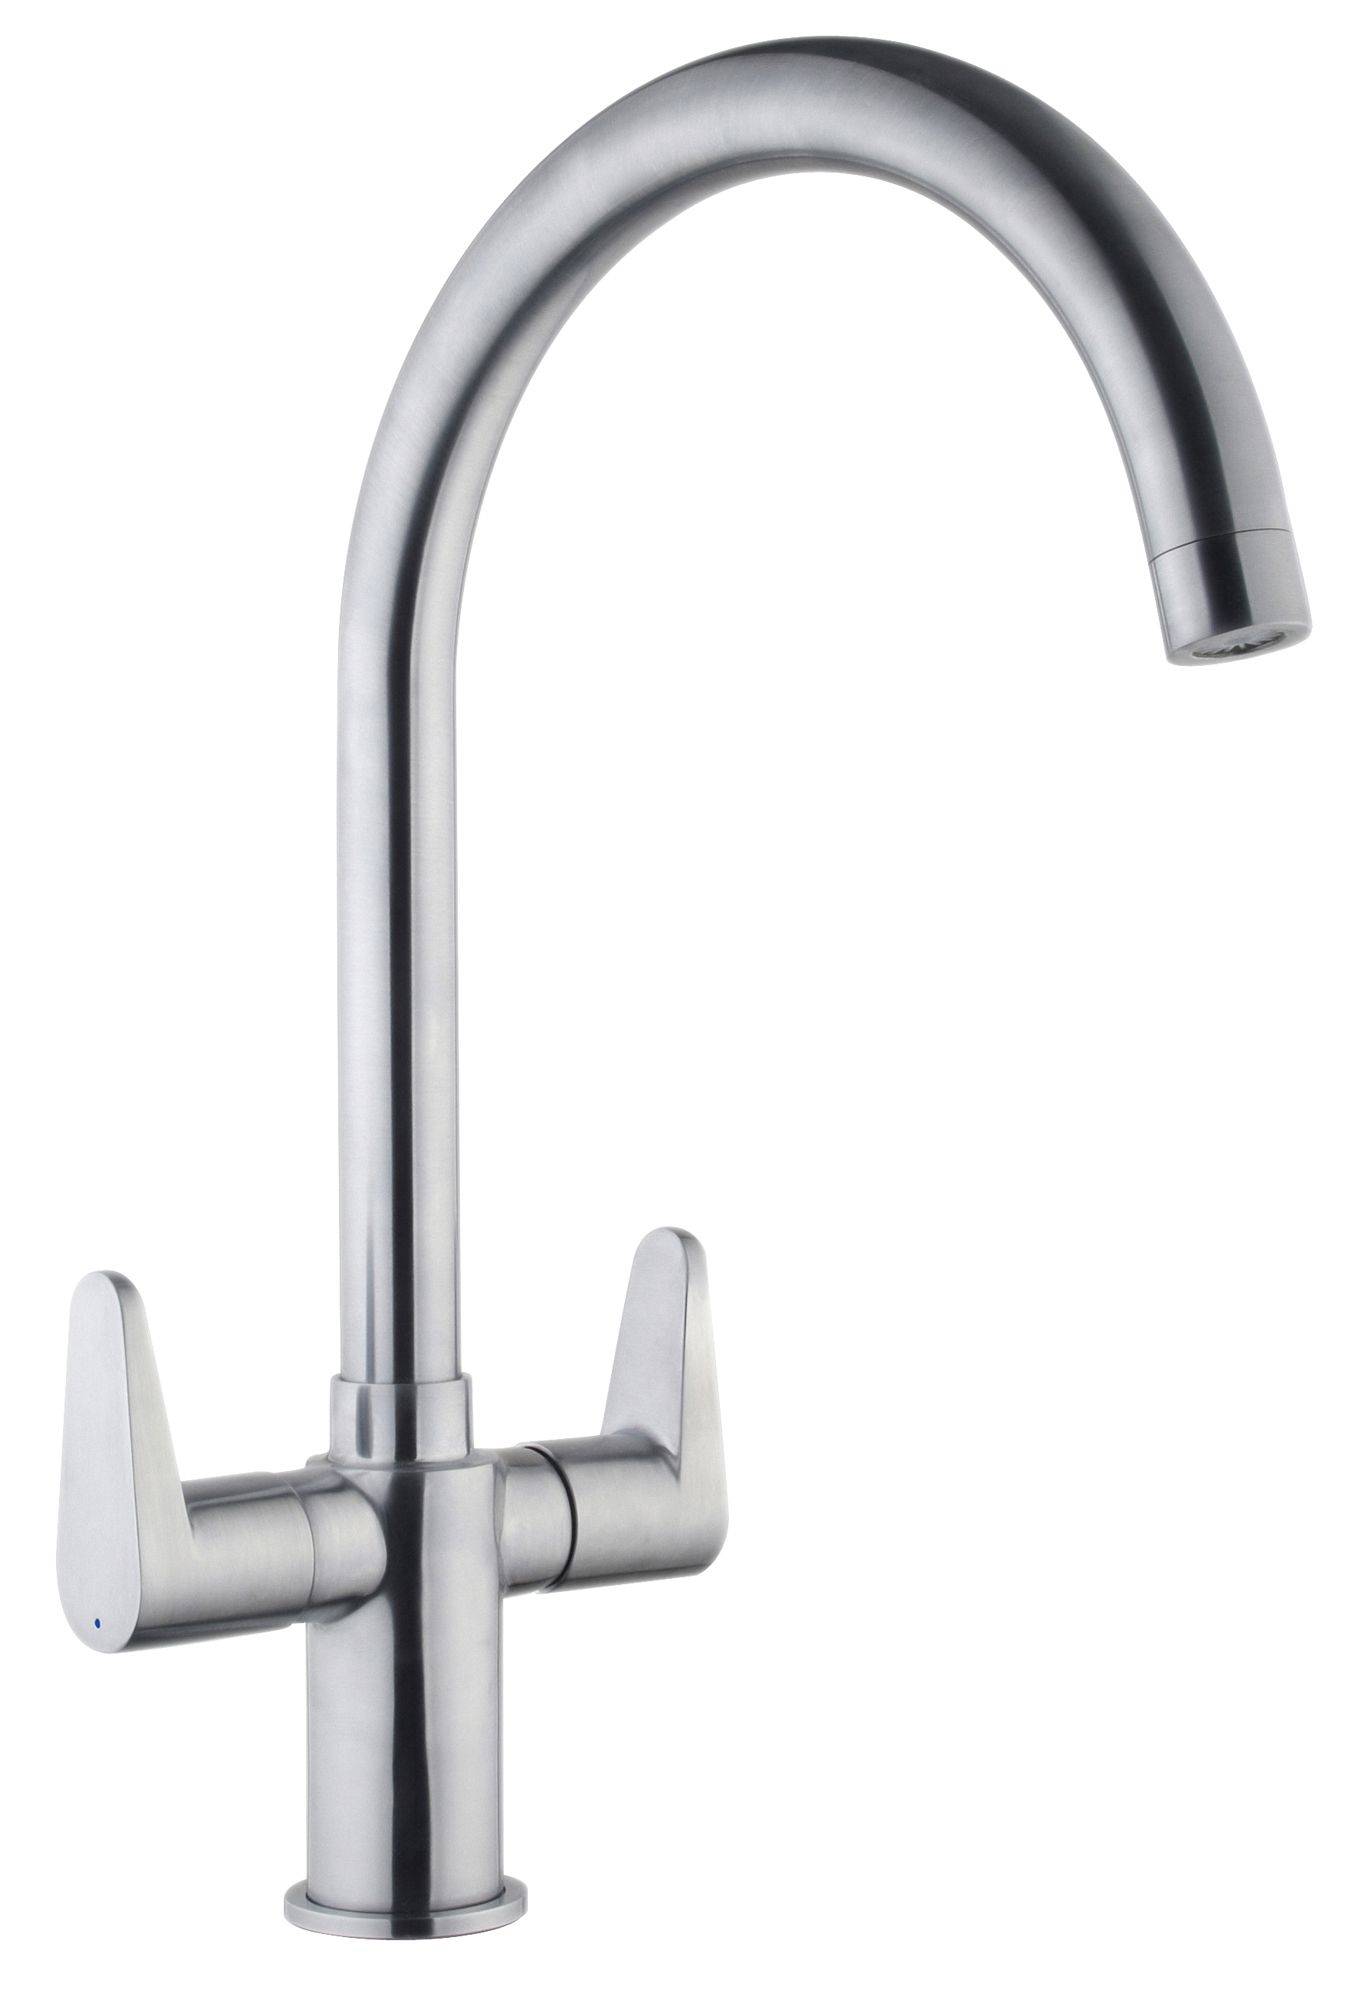 Cooke & Lewis Tone Monobloc Tap | Departments | DIY at B&Q